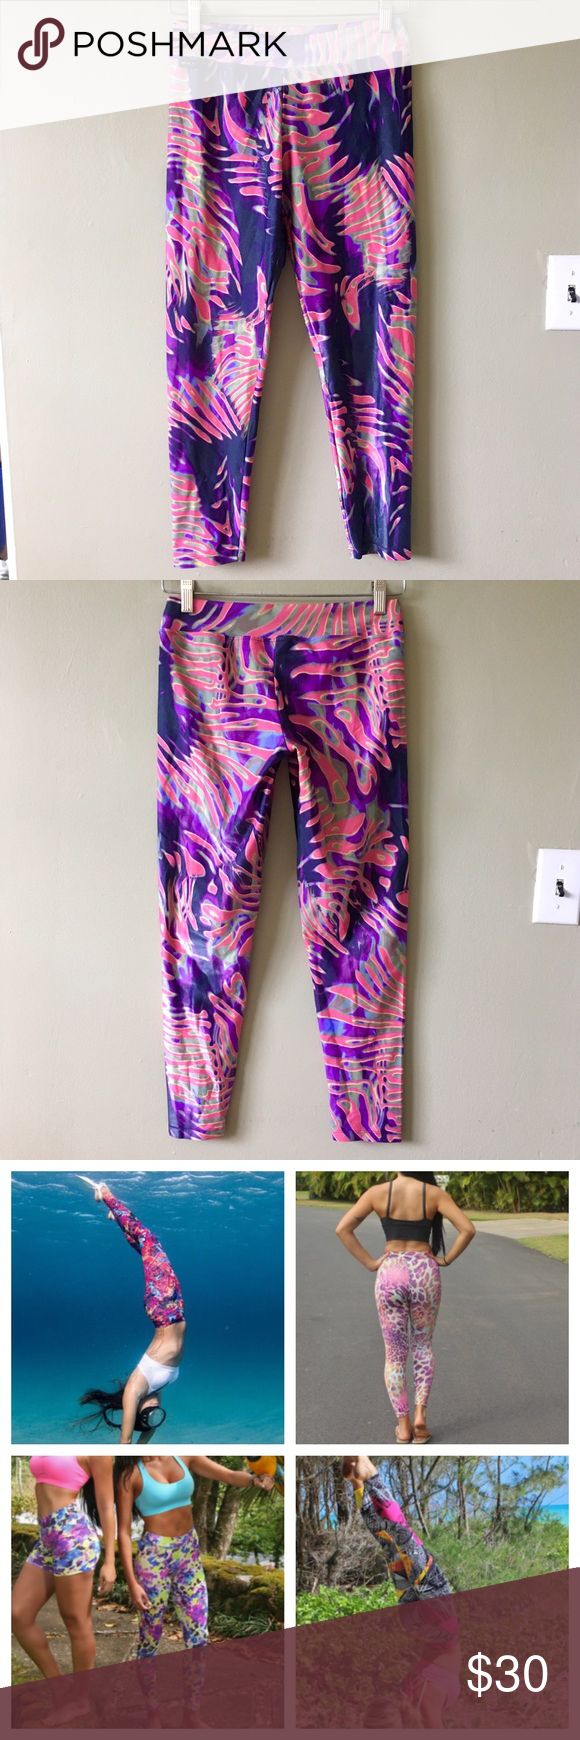 🌈Santo Fit Colorful Stretch Yoga Leggings Pants 🌴Santo Fit Hawaii/Brazil Colorful Pattern Stretch Medium Waist Yoga Athletic Workout Fitness Leggings Pants. Size Large. 85% polyamide, 15% elastane. Barely used, excellent condition. Comfy and fun!🌺 Santo Fit Pants Leggings